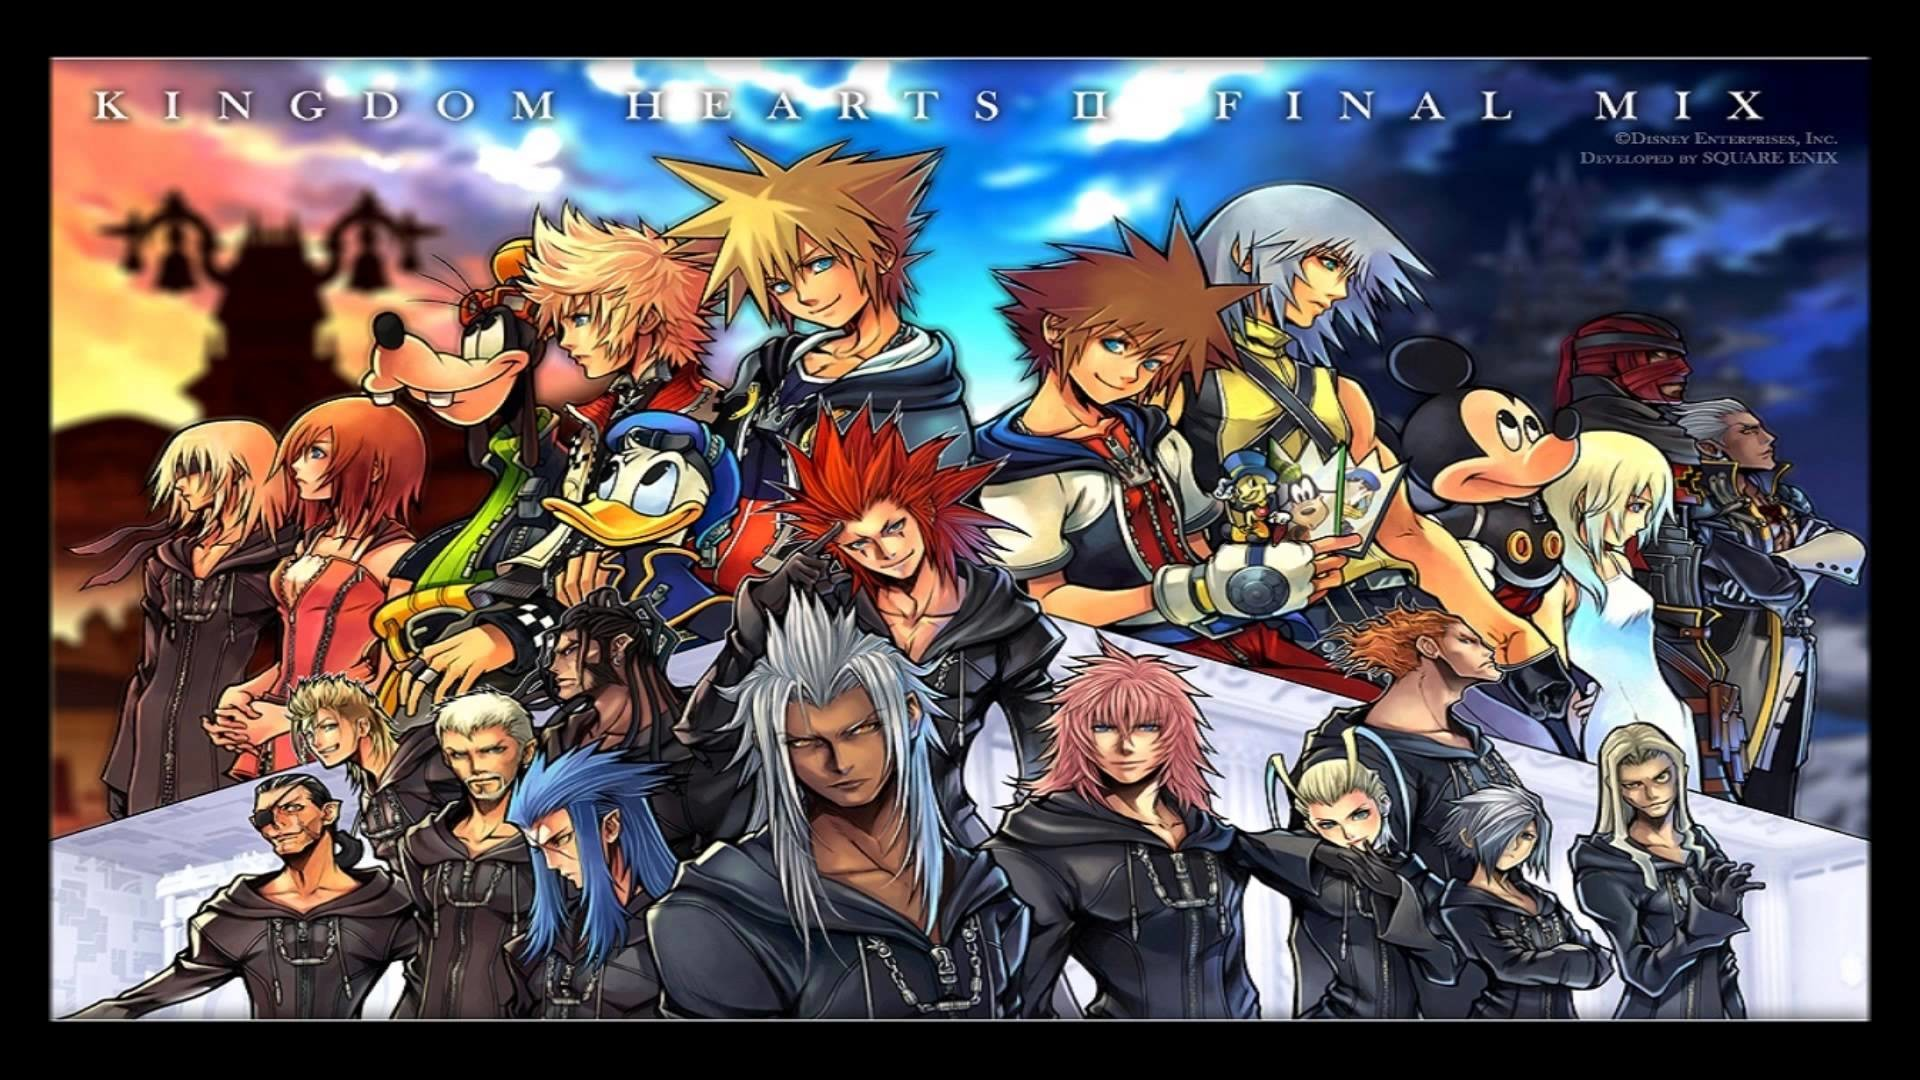 Kingdom Hearts 2 Final Mix Wallpaper (72+ images)